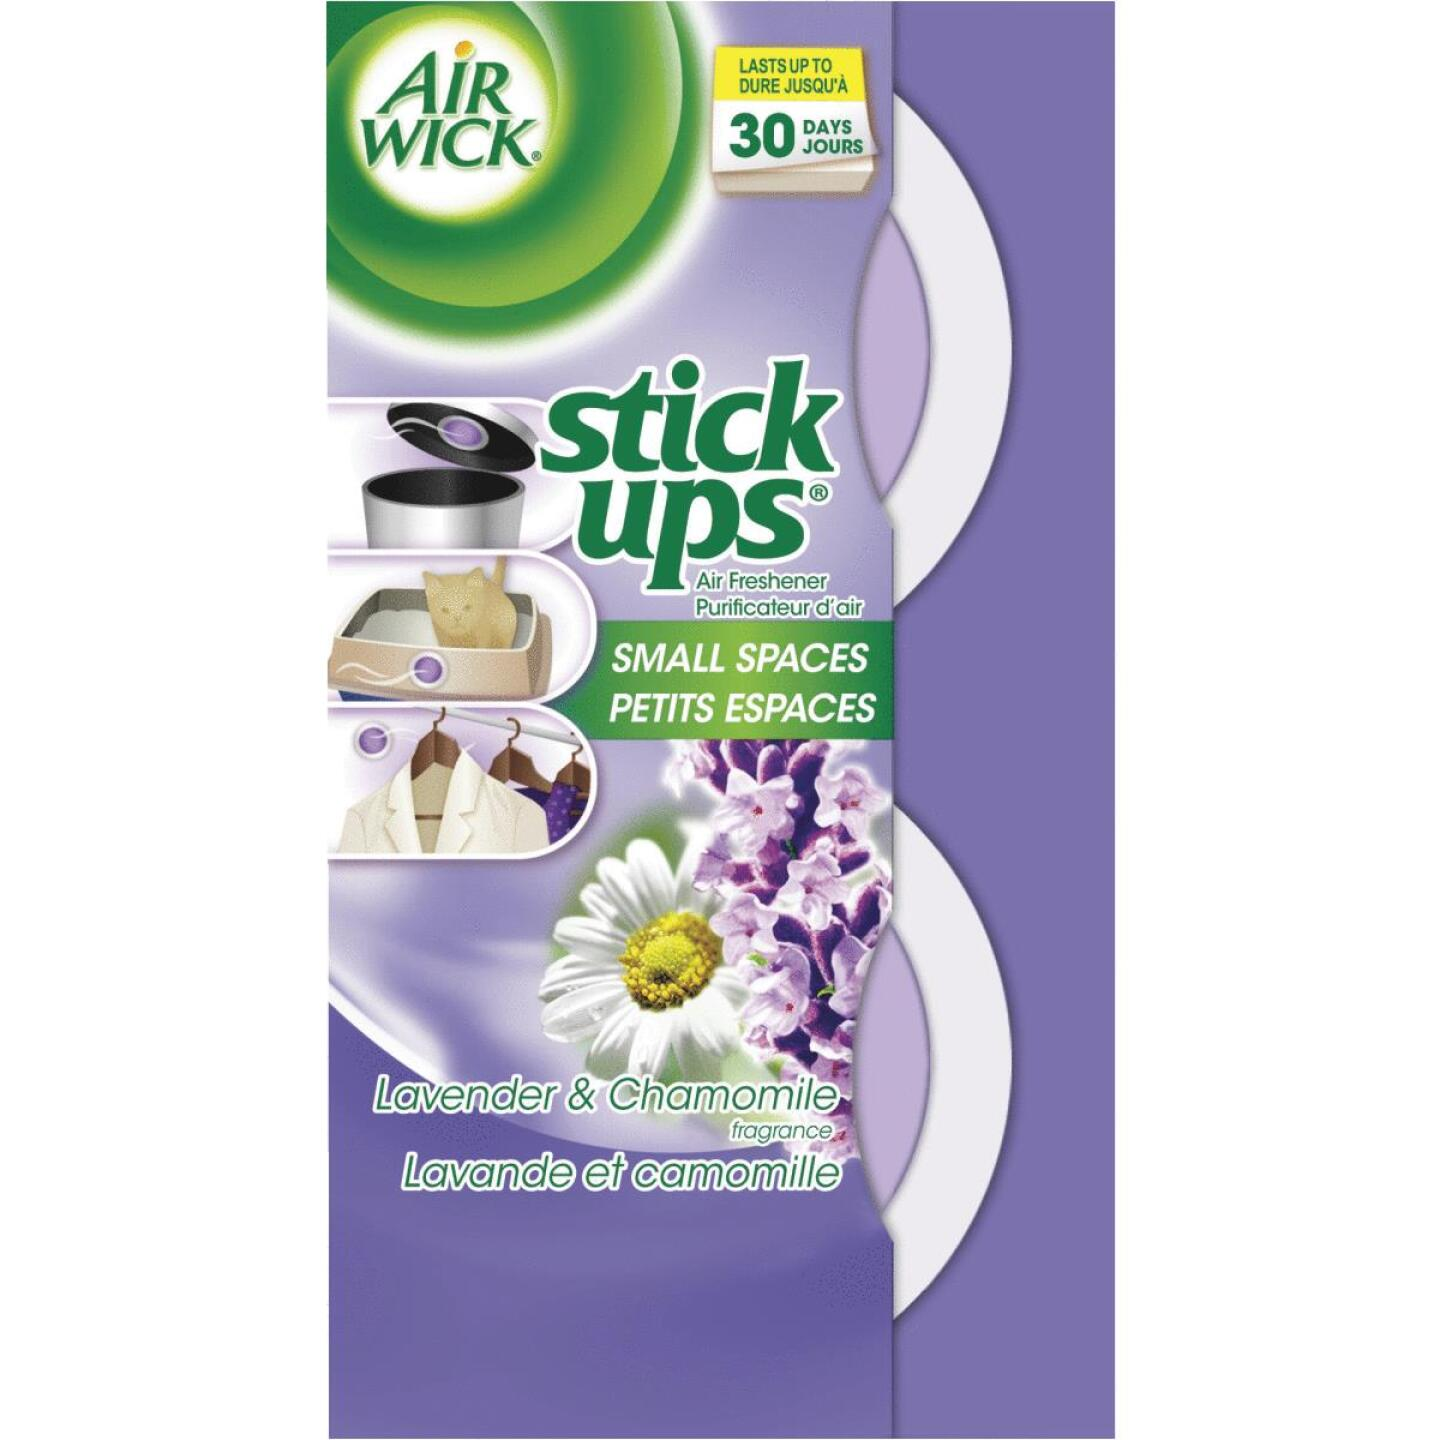 Air Wick Stick Ups Fresh Water Small Spaces Solid Air Freshener (2-Count) Image 1